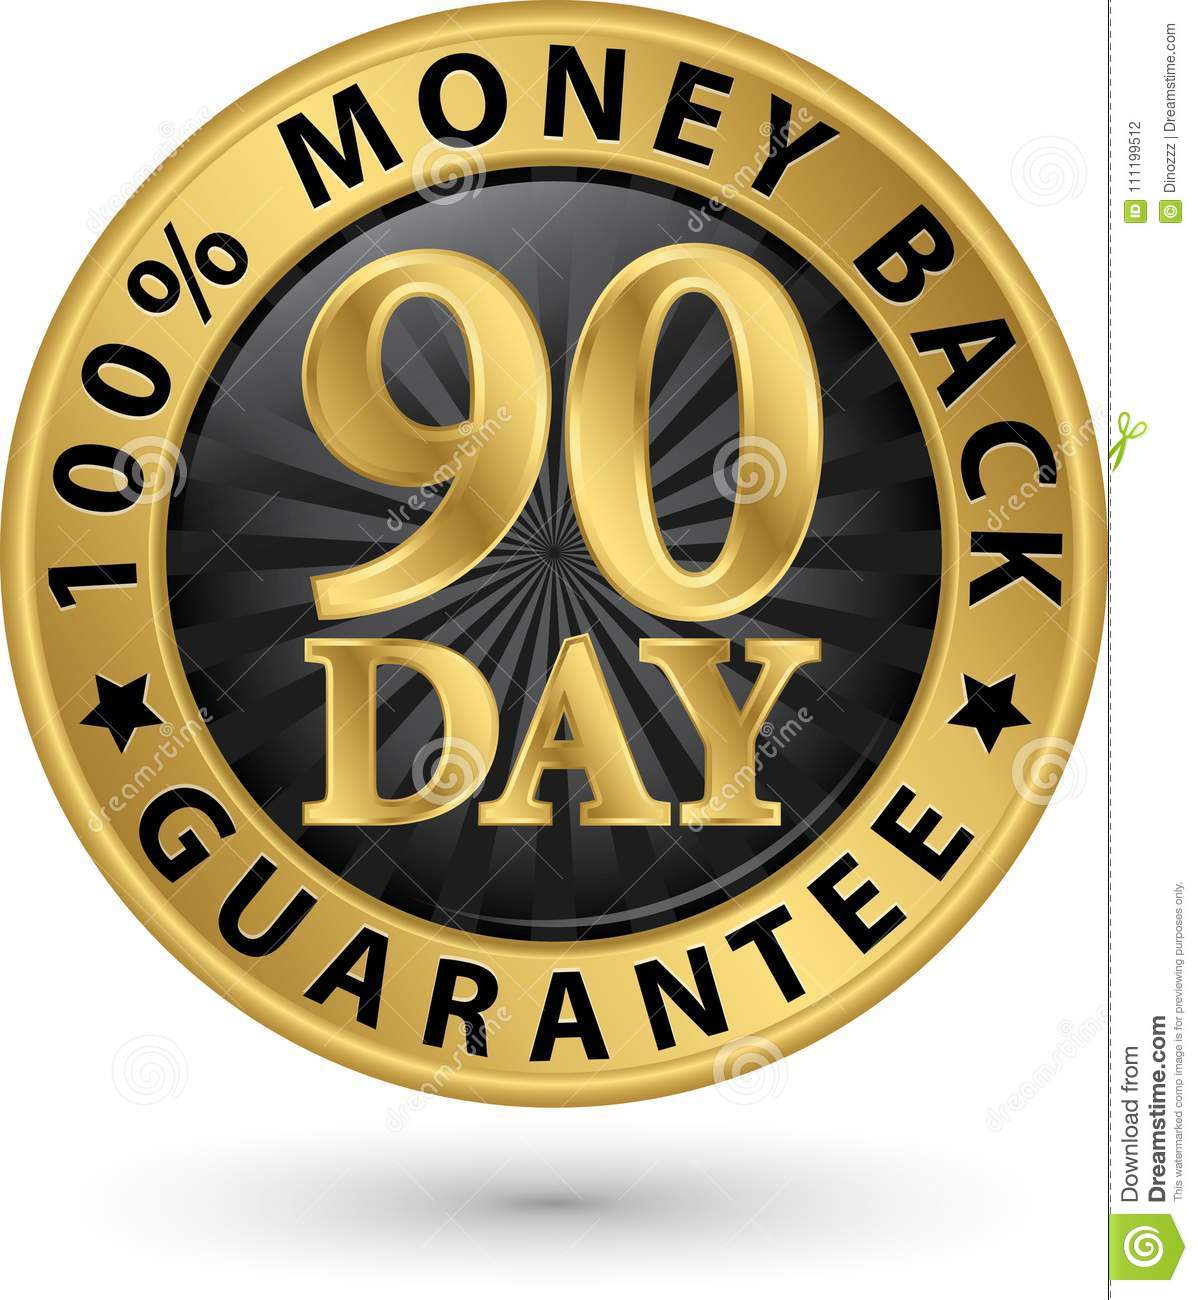 90 day 100  money back guarantee golden sign, vector illustrati